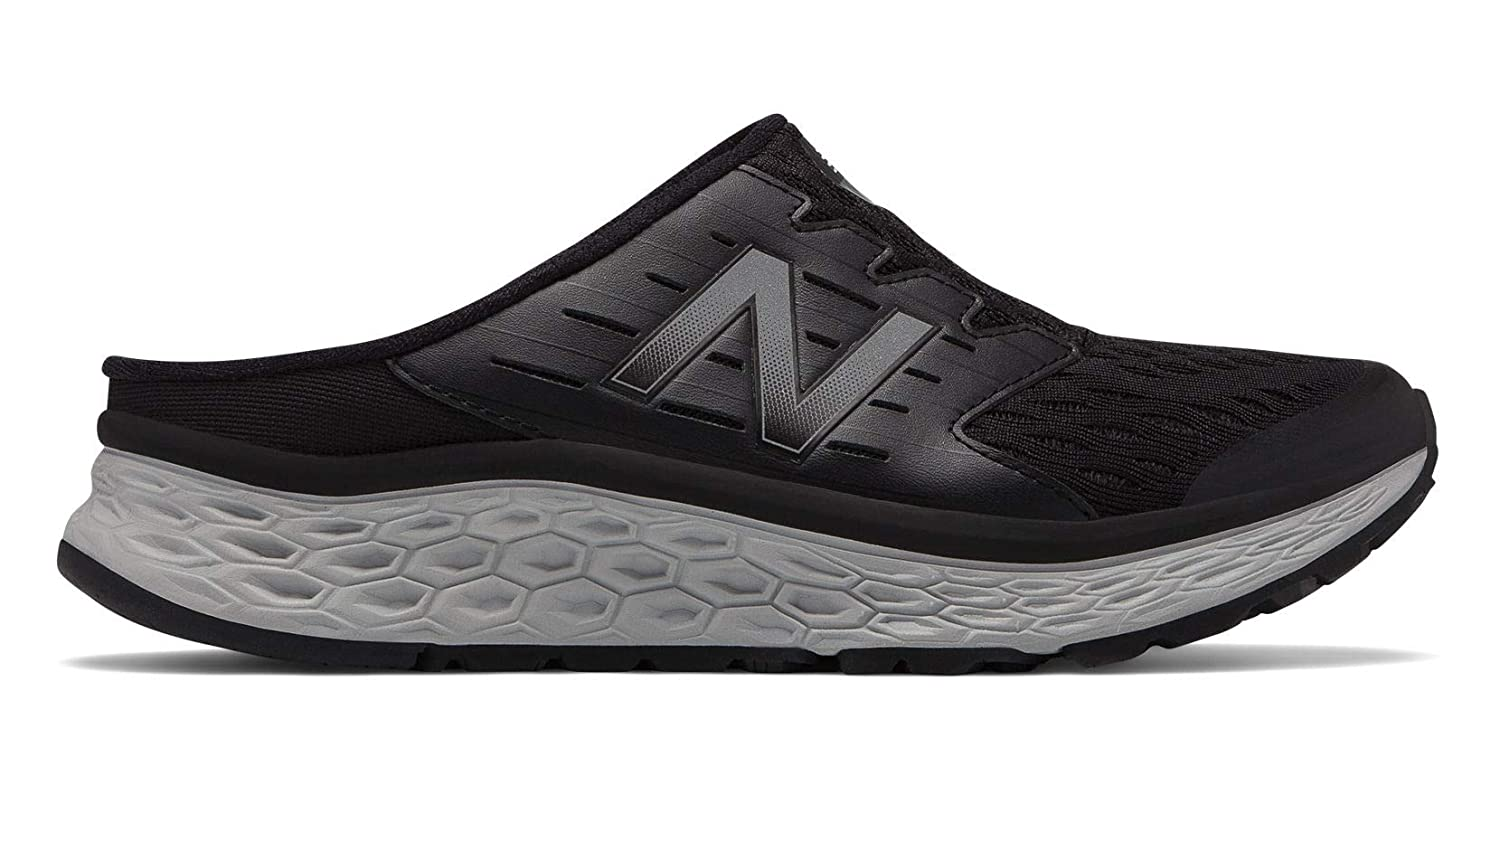 New Balance Sport Slip 900 Shoe Women's Walking 7.5 Black